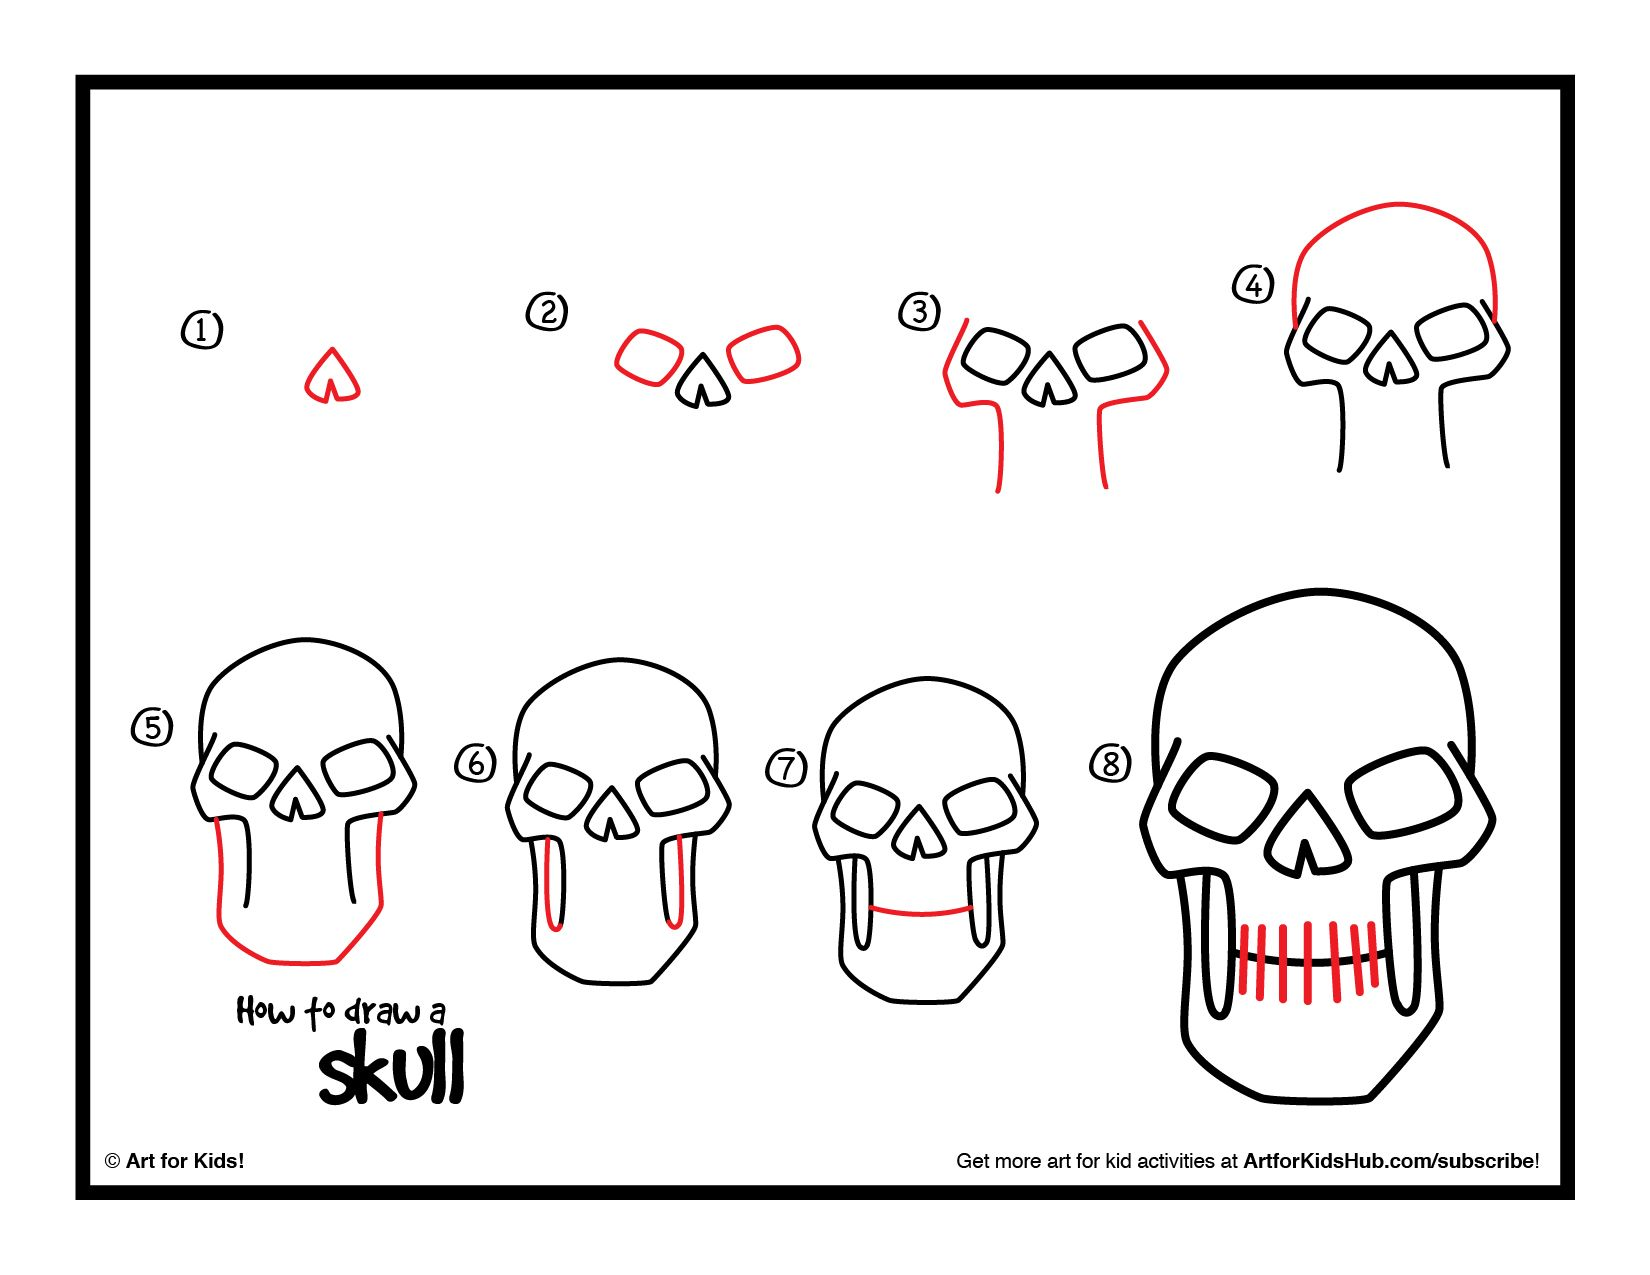 How To Draw A Skull Art For Kids Hub Easy Halloween Drawings